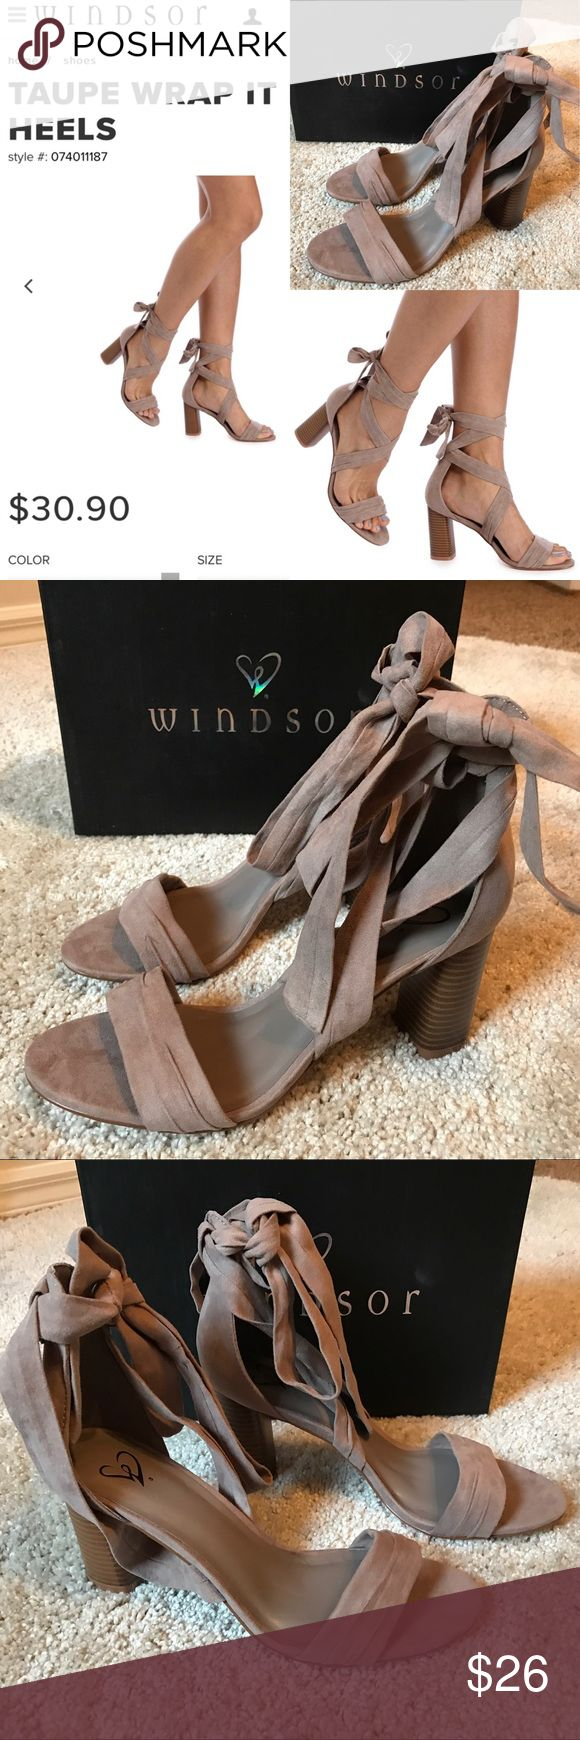 Windsor TAUPE WRAP IT UP HEELS Shoes 9 Brand New Brand new, unworn. Comes with packaging & box. Price firm.  Size: 9 Wrap up your outfit with these cute heels! They keep things flirty with a wrap around ankle tie, a stacked heel and an open toe with a basic strap. The shoes are composed of a faux suede material and have a flat sole. Windsor Shoes Heels